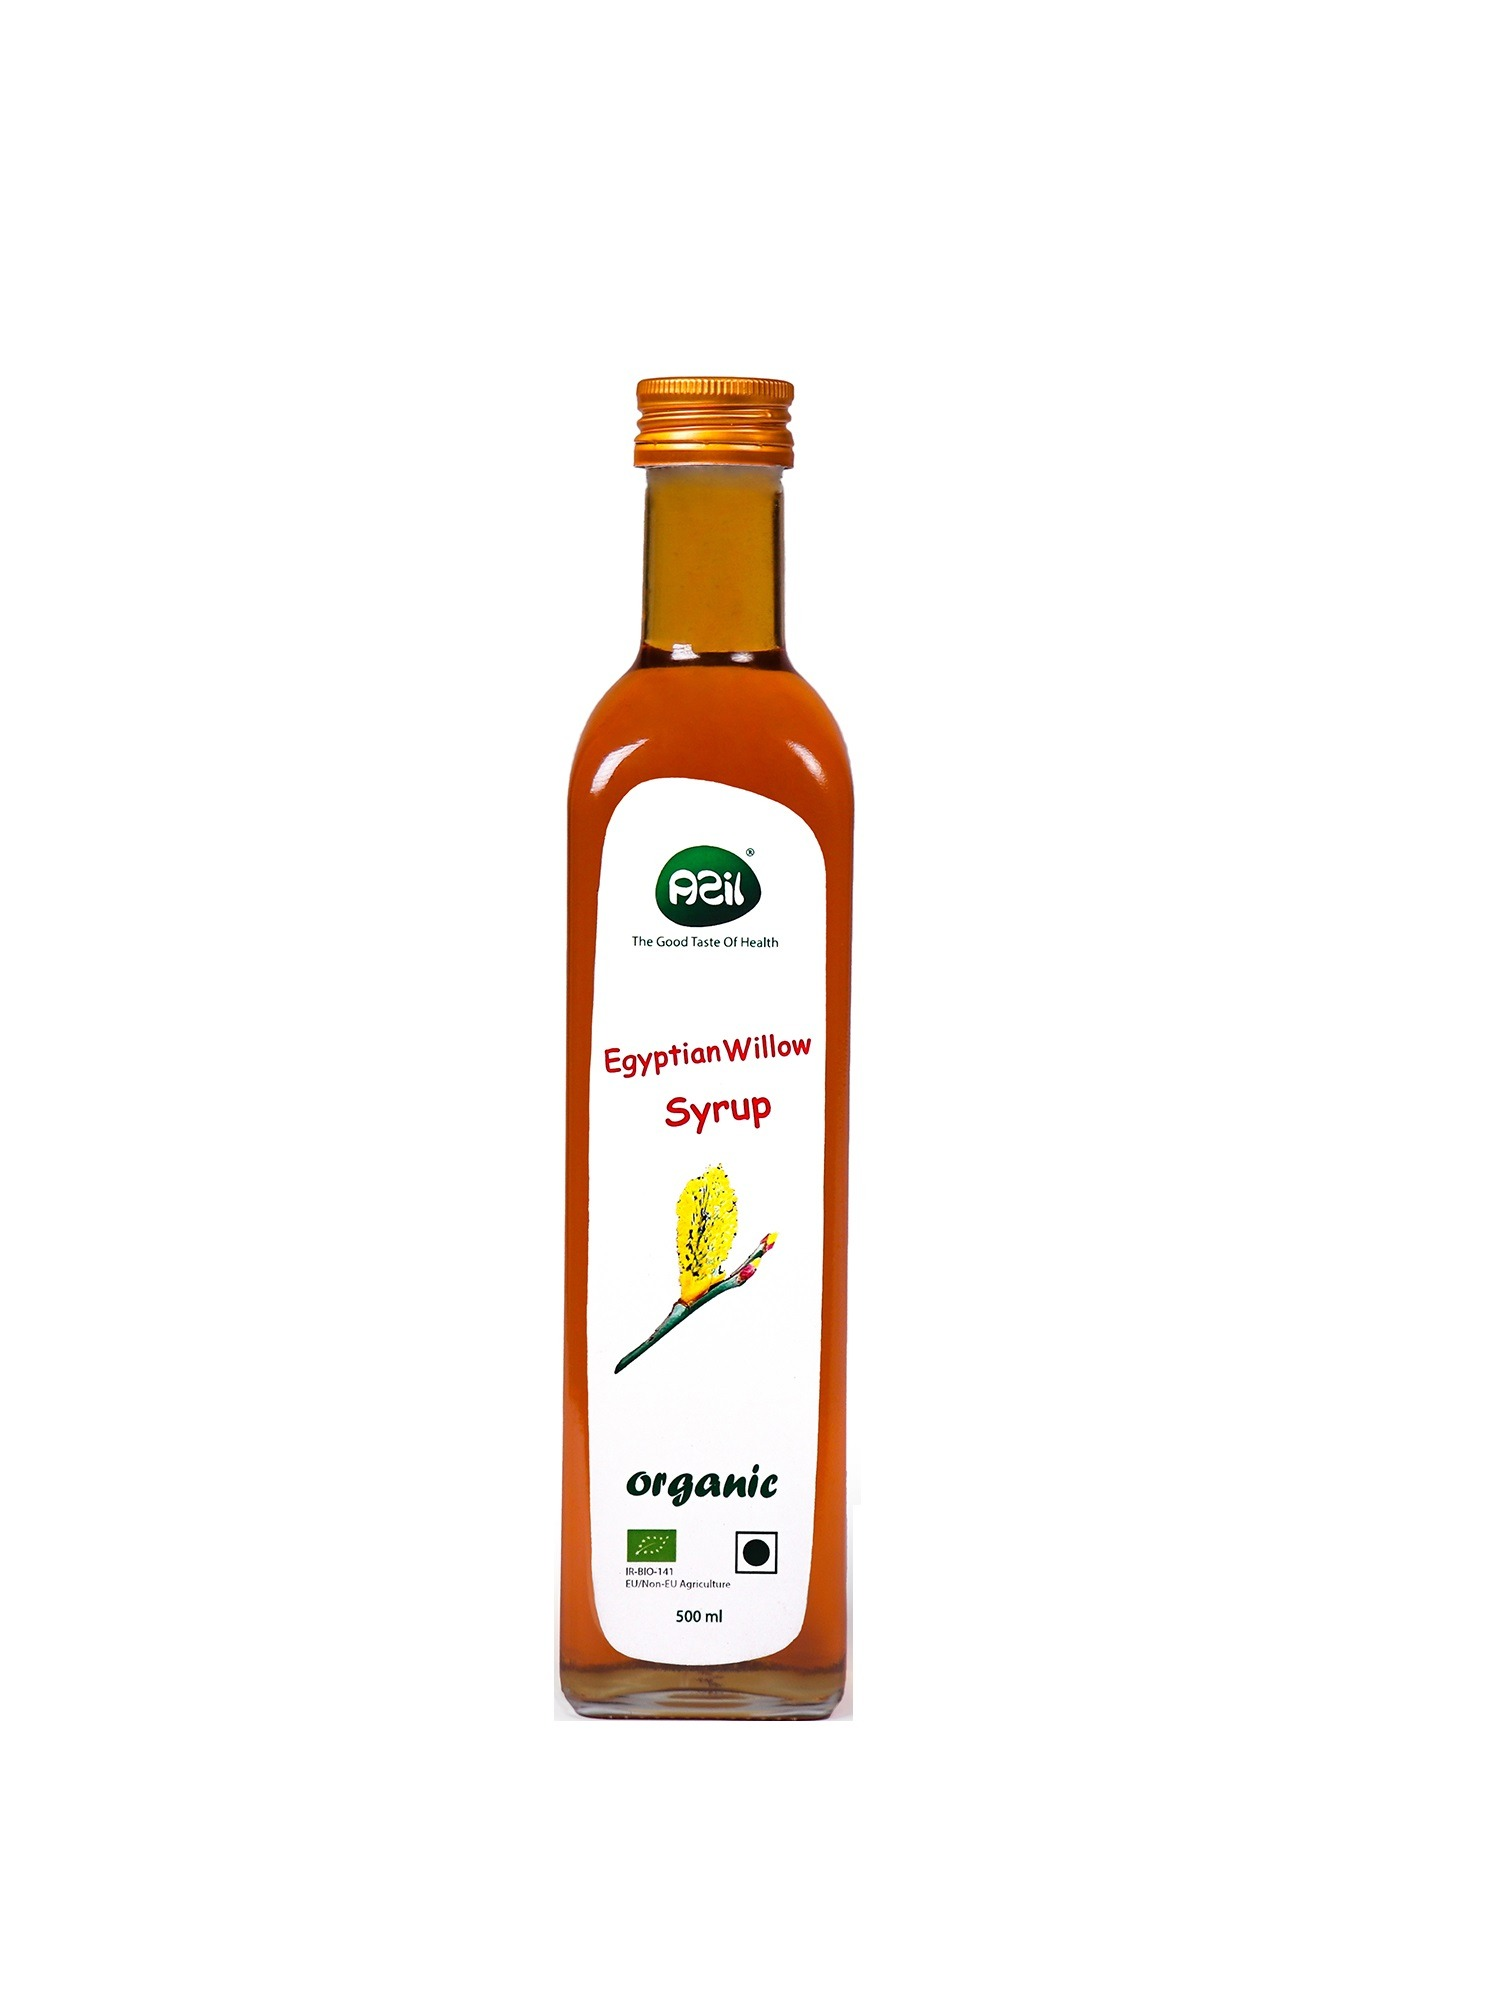 4 - Azil organic Egyptian Willow Syrup